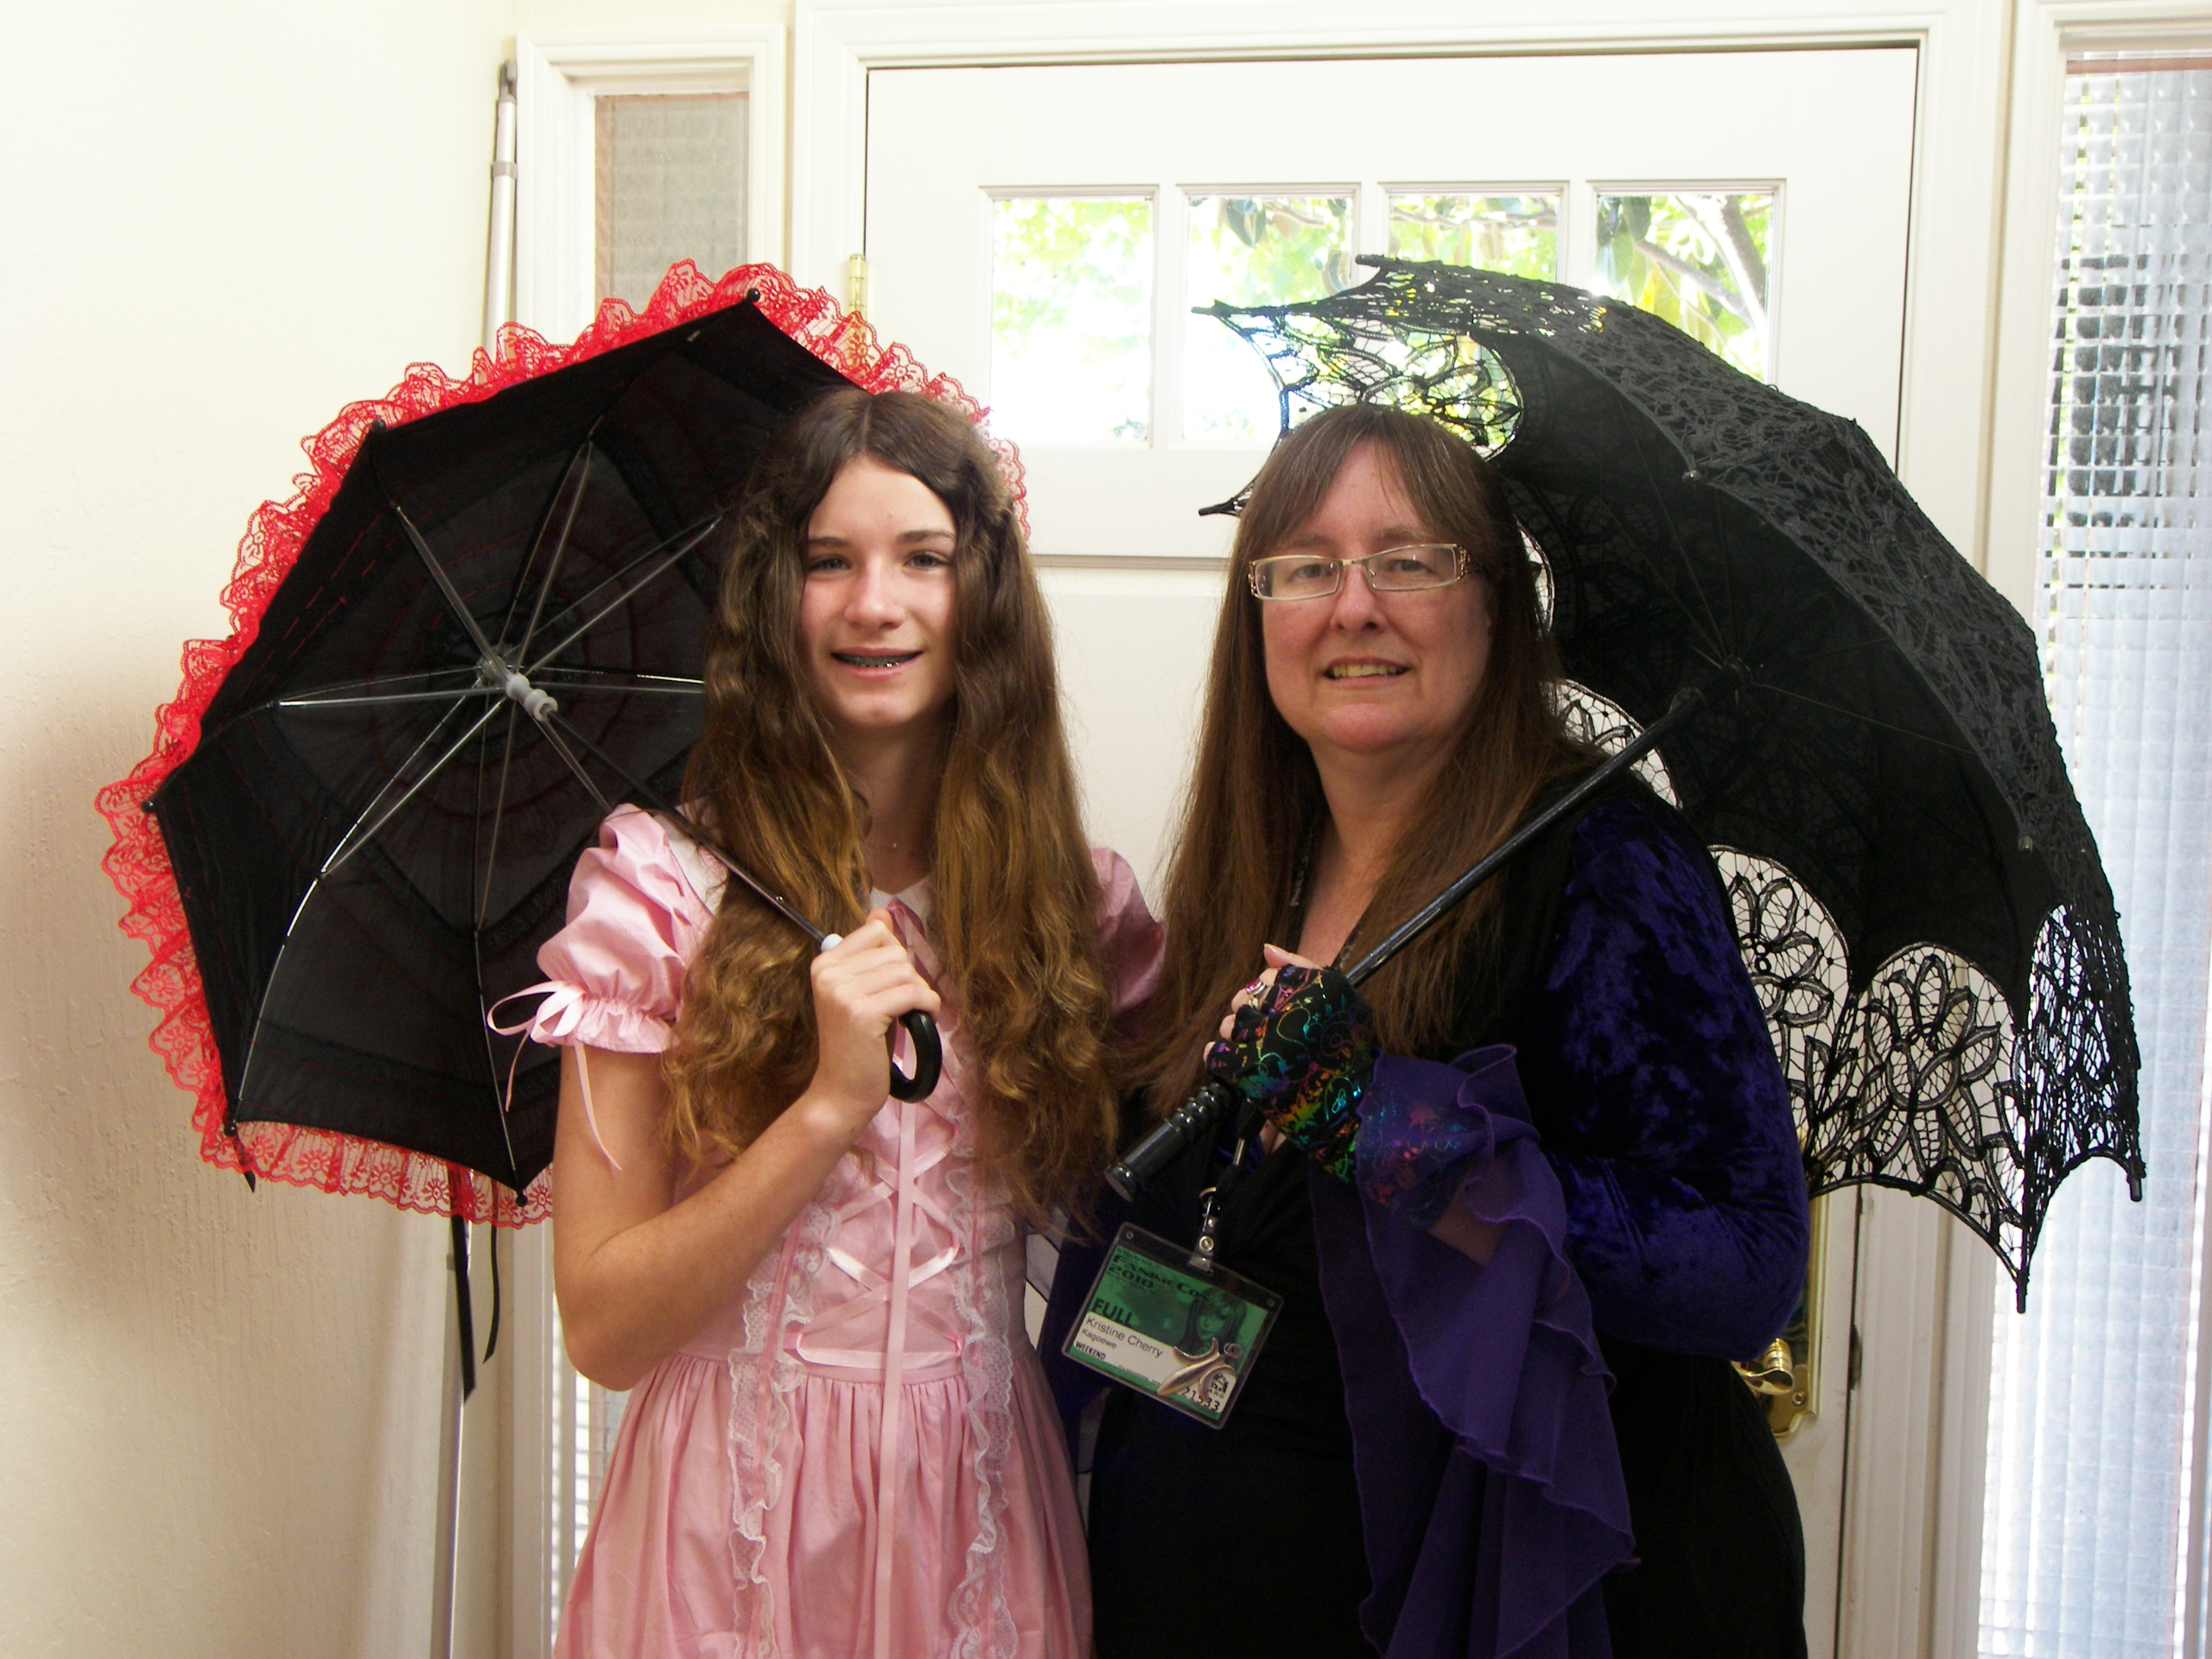 KC Dragonfly - Kristine and Annie with parasols